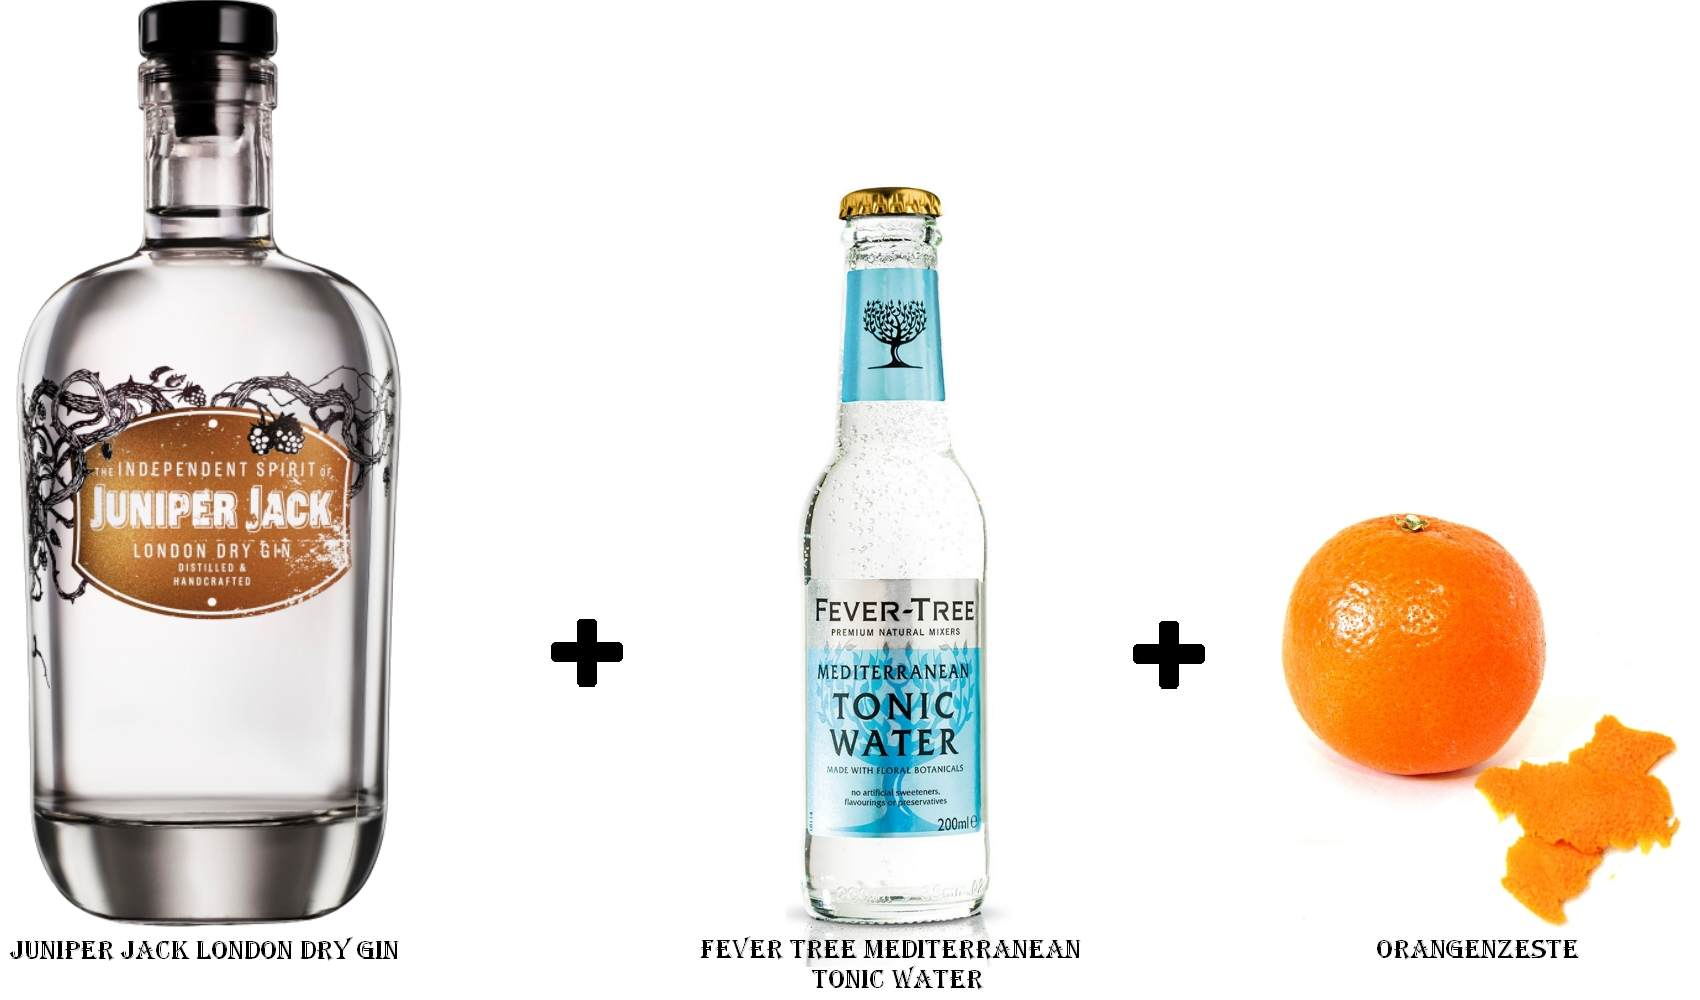 Juniper Jack London Dry Gin + Fever Tree Mediterranean Tonic Water + Orangenzeste